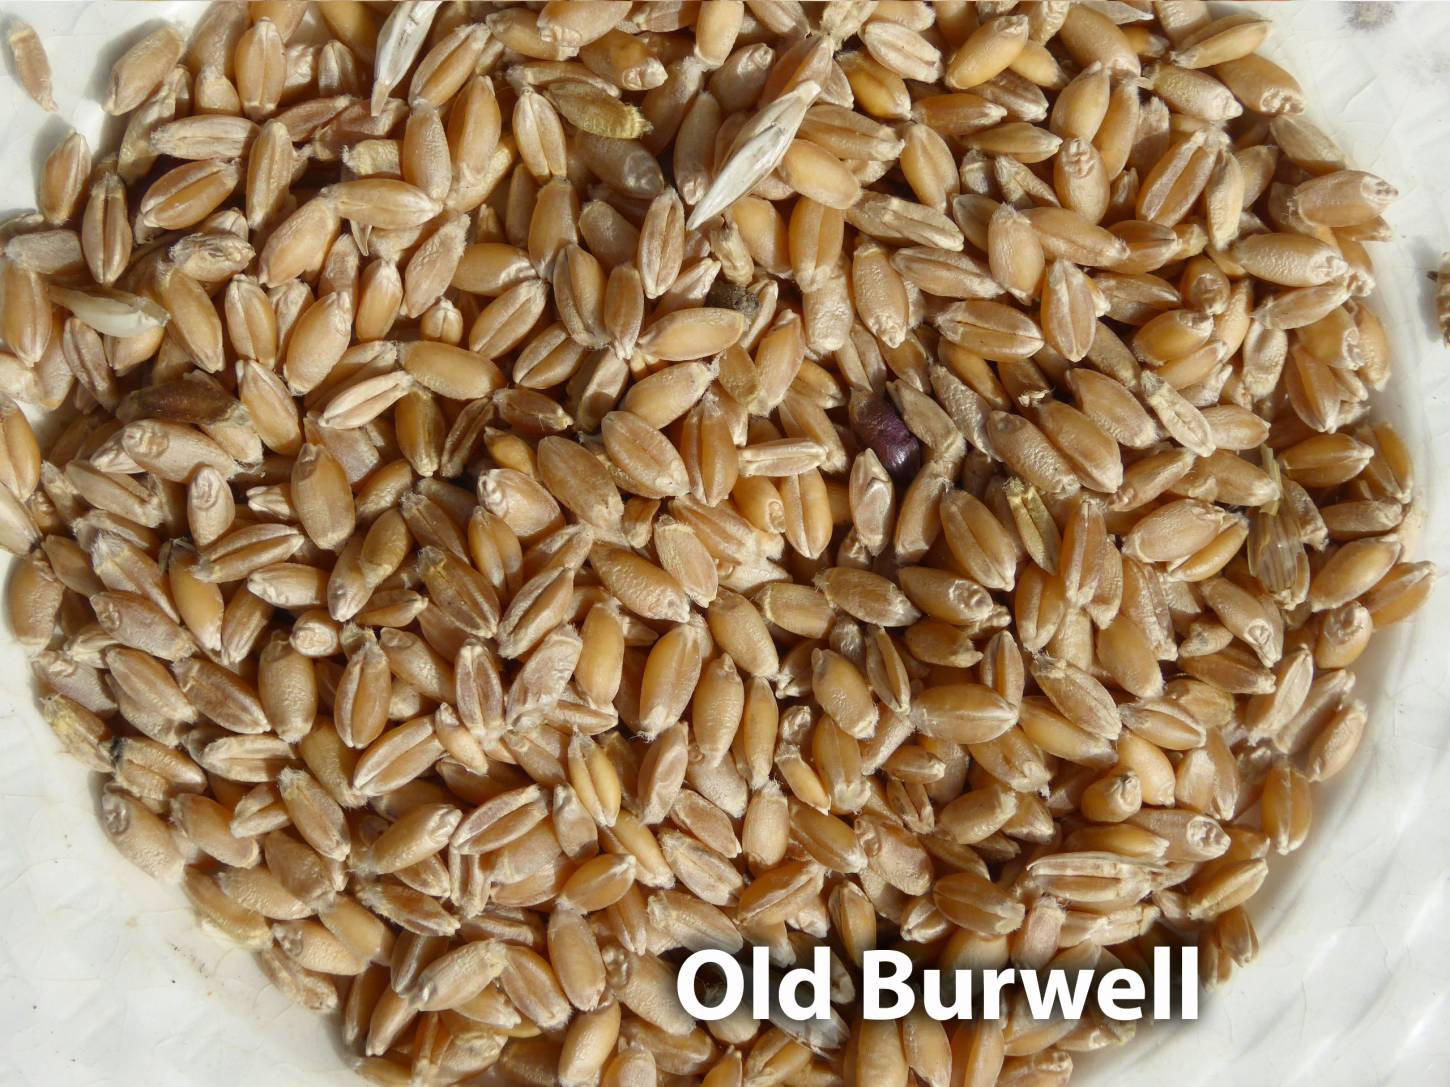 grain samples from allotment, <a href='http://www.wheat-gateway.org.uk/hub.php?ID=27' target='_blank'>Old Burwell</a>